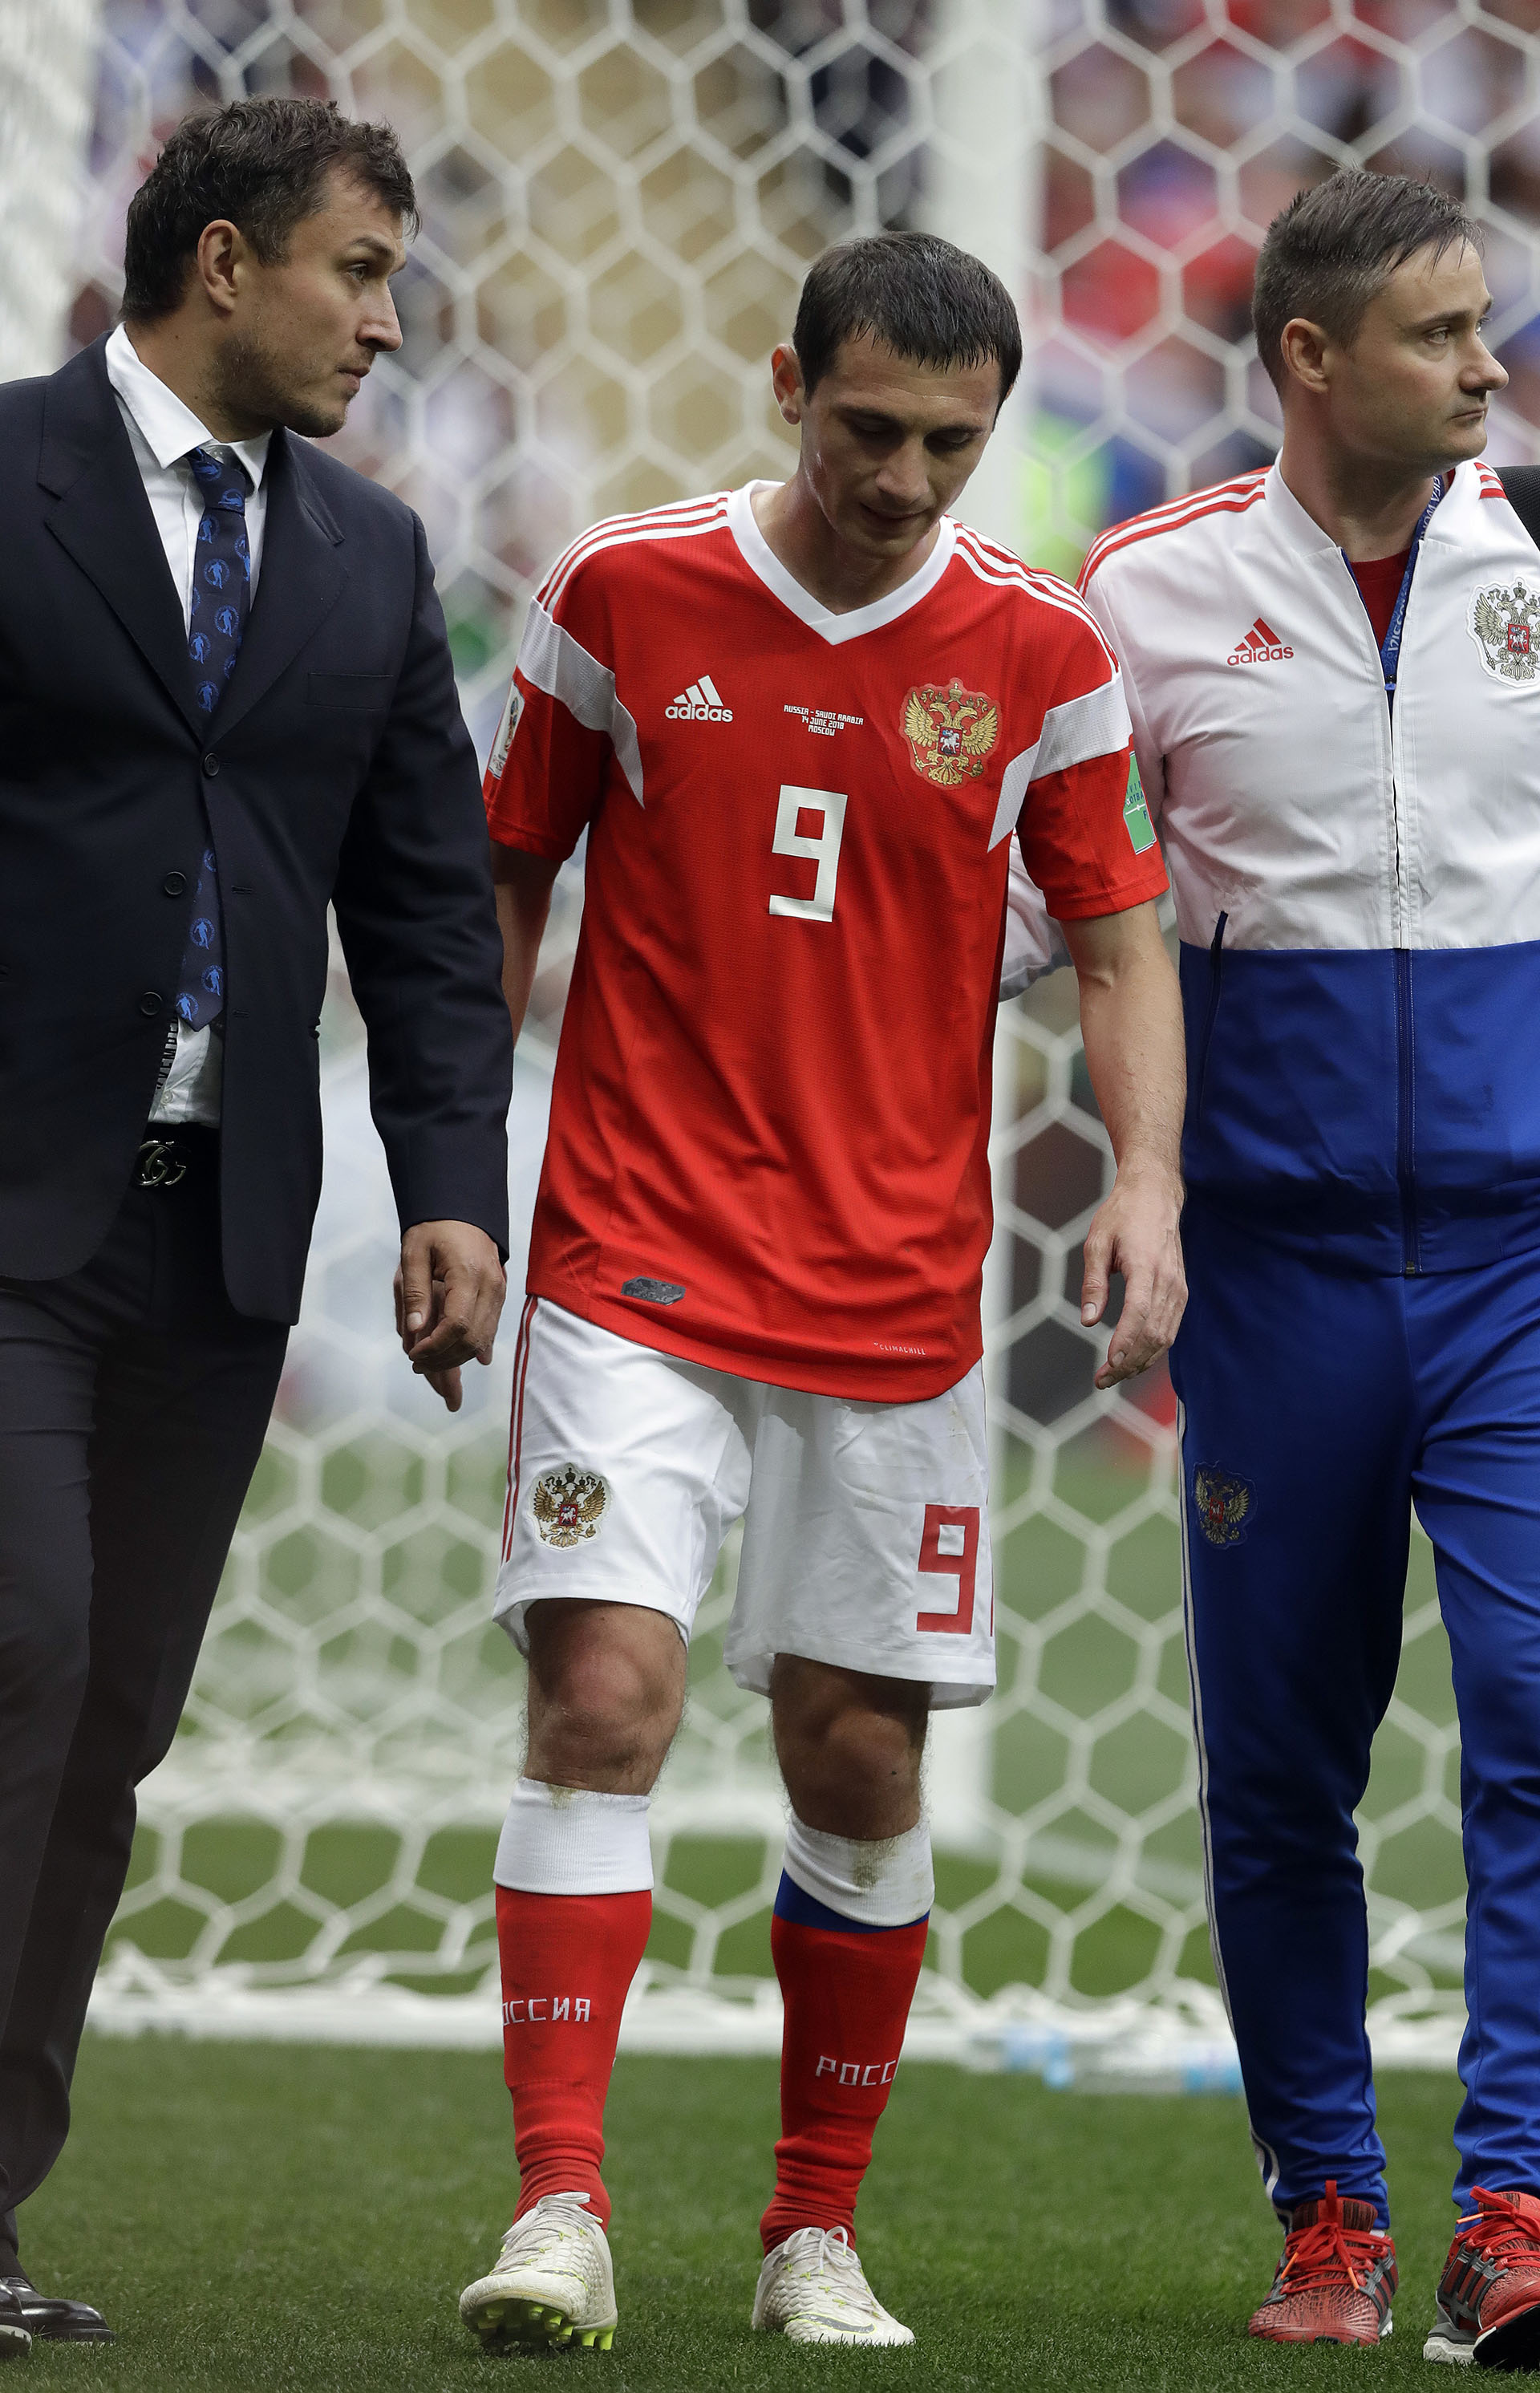 Russia's Alan Dzagoev leaves the pitch injured during the group A match between Russia and Saudi Arabia which opens the 2018 soccer World Cup at the Luzhniki stadium in Moscow, Russia, Thursday, June 14, 2018. (AP Photo/Matthias Schrader)